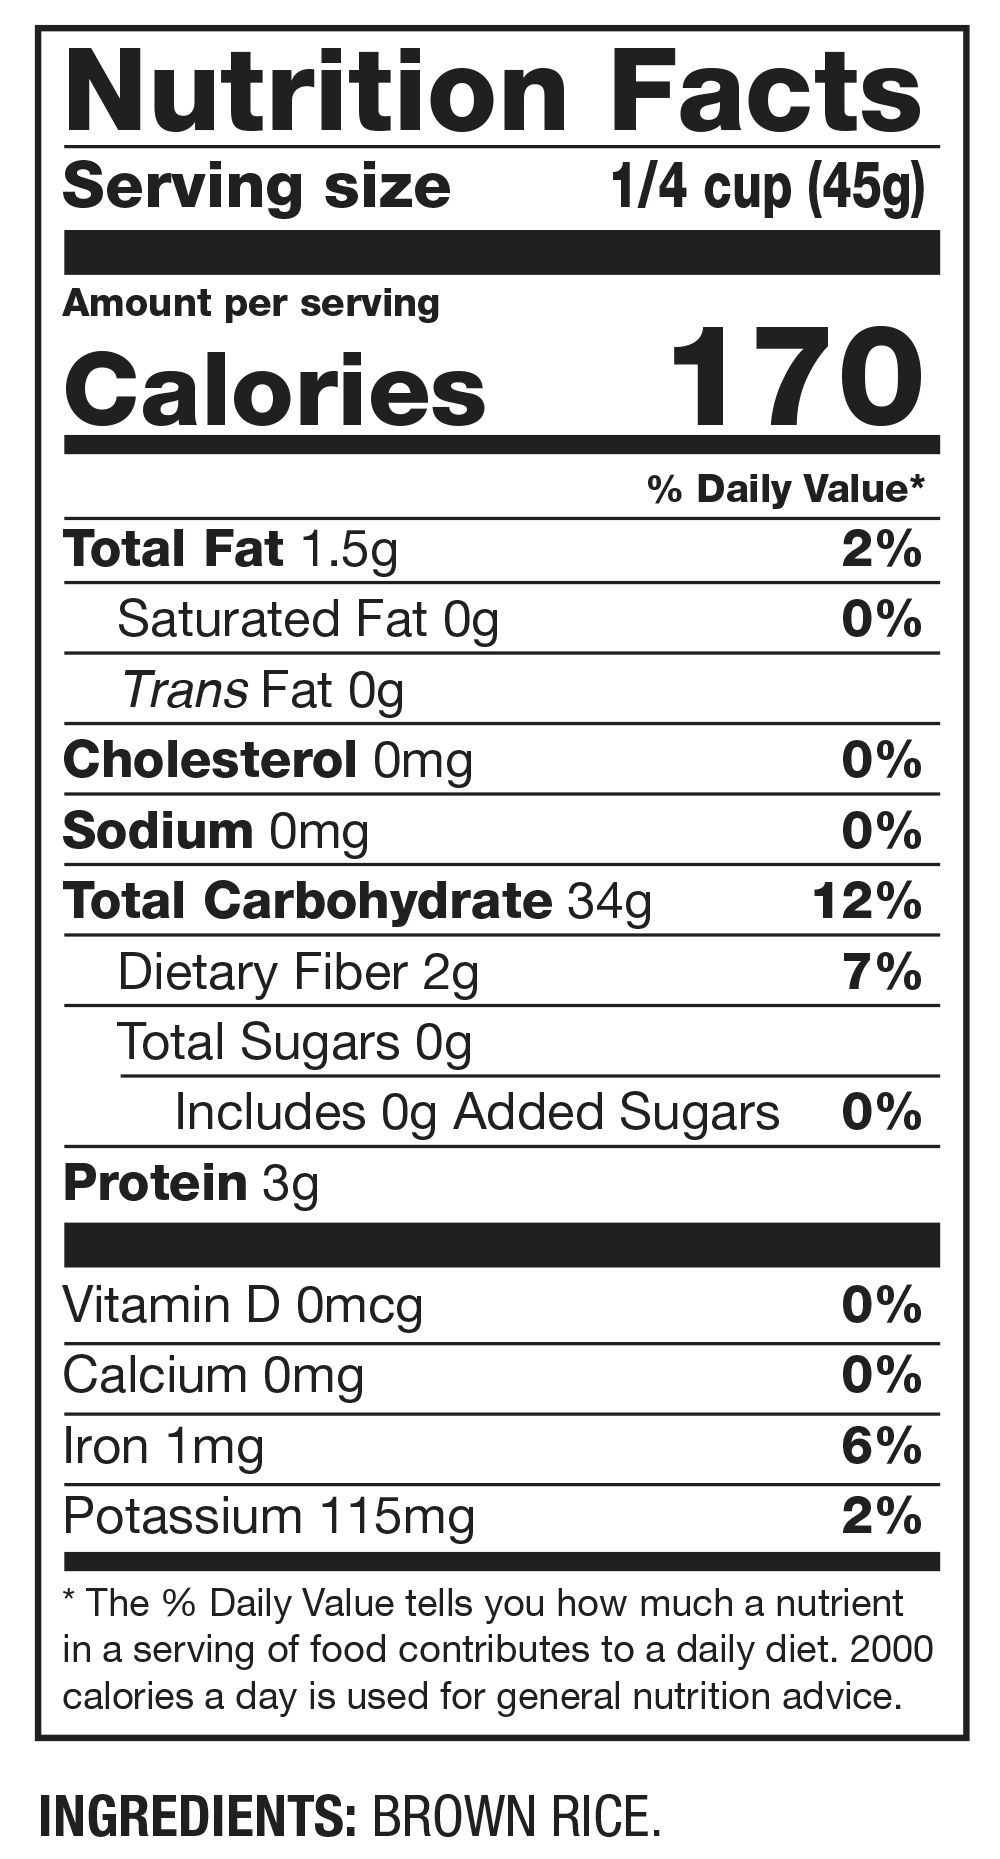 Nutrition Facts Whole Grain Brown Rice